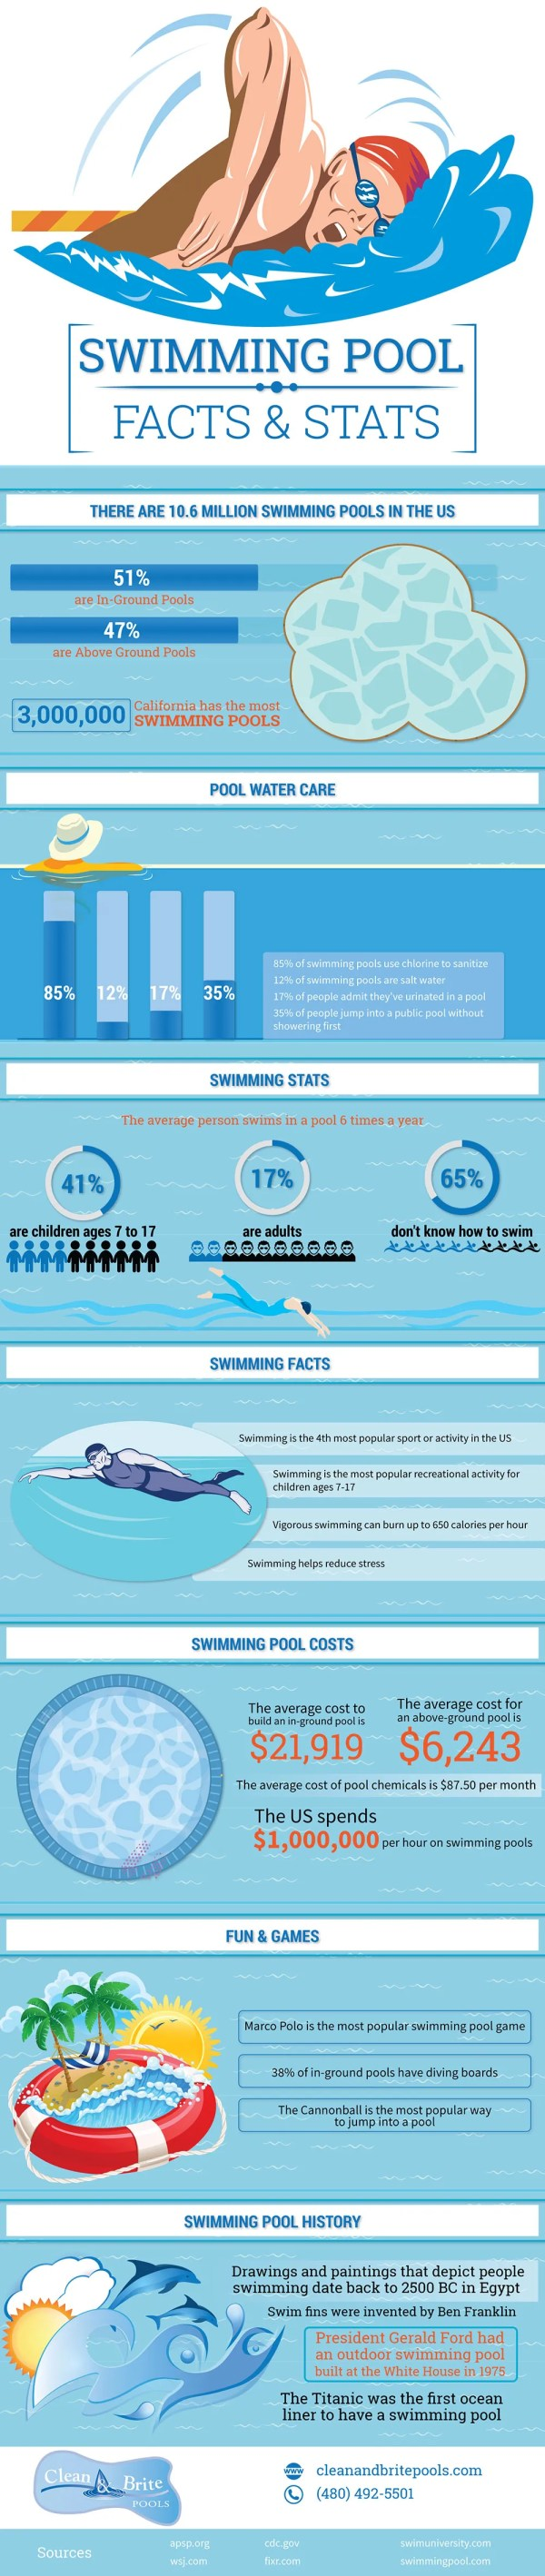 swimming-facts-infographic